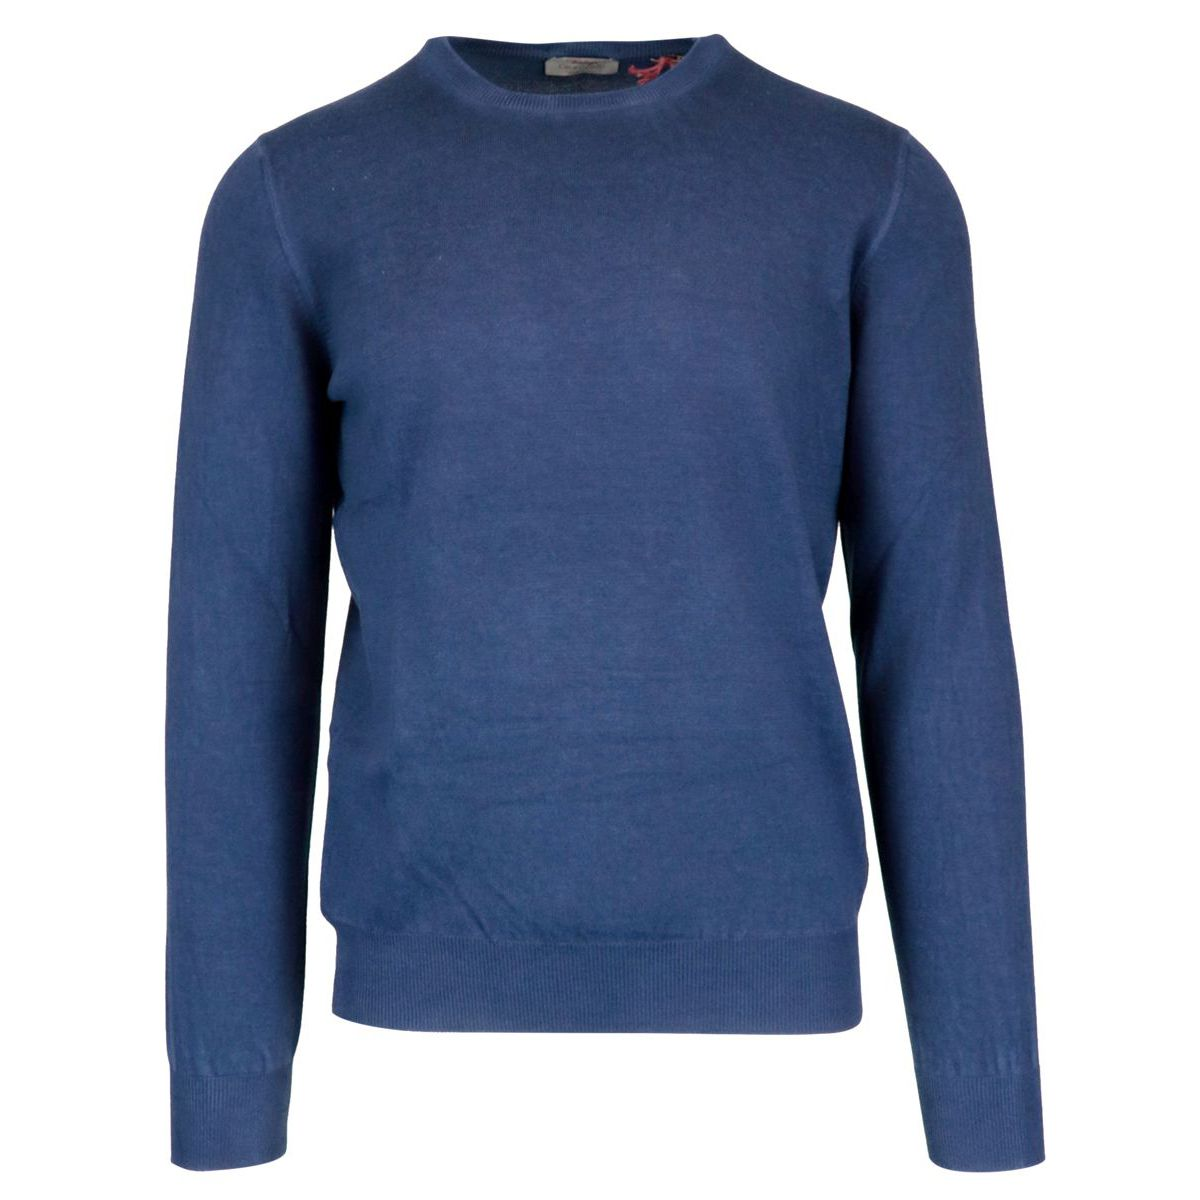 Crew neck sweater in solid color with ribbed profiles Blue Gran Sasso